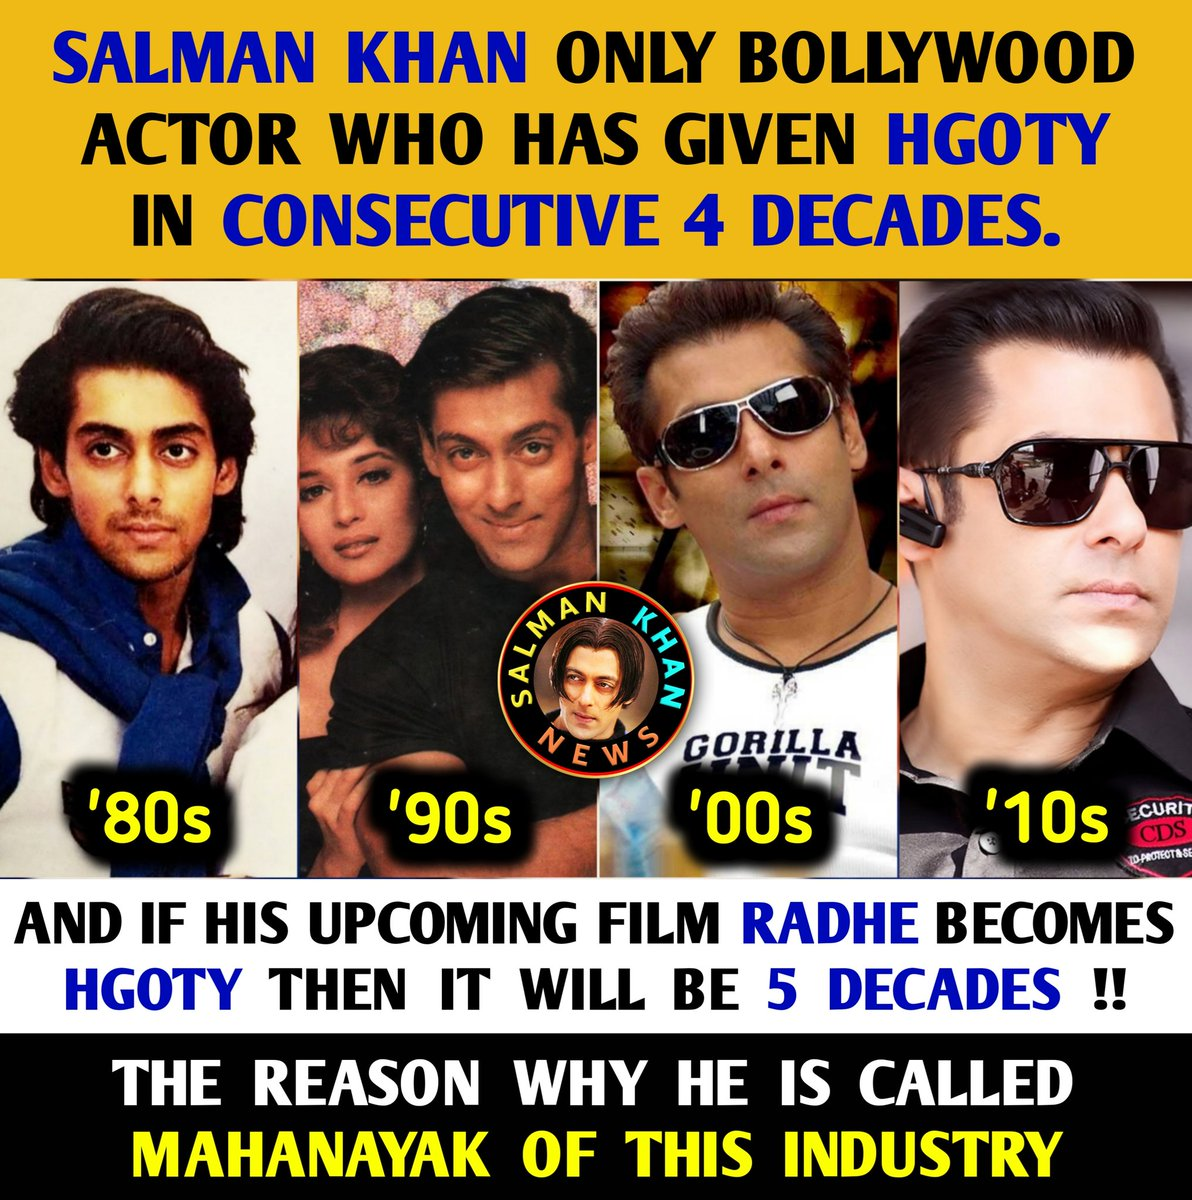 #SalmanKhan only bollywood actor who has given #HGOTY in consecutive 4 decades ('80s, '90s, '00s & '10s). . . . 💥 And if his upcoming film #Radhe becomes HGOTY then it will be 5 decades! 🔥 The reason why he is called MAHANAYAK Of This Industry 👑